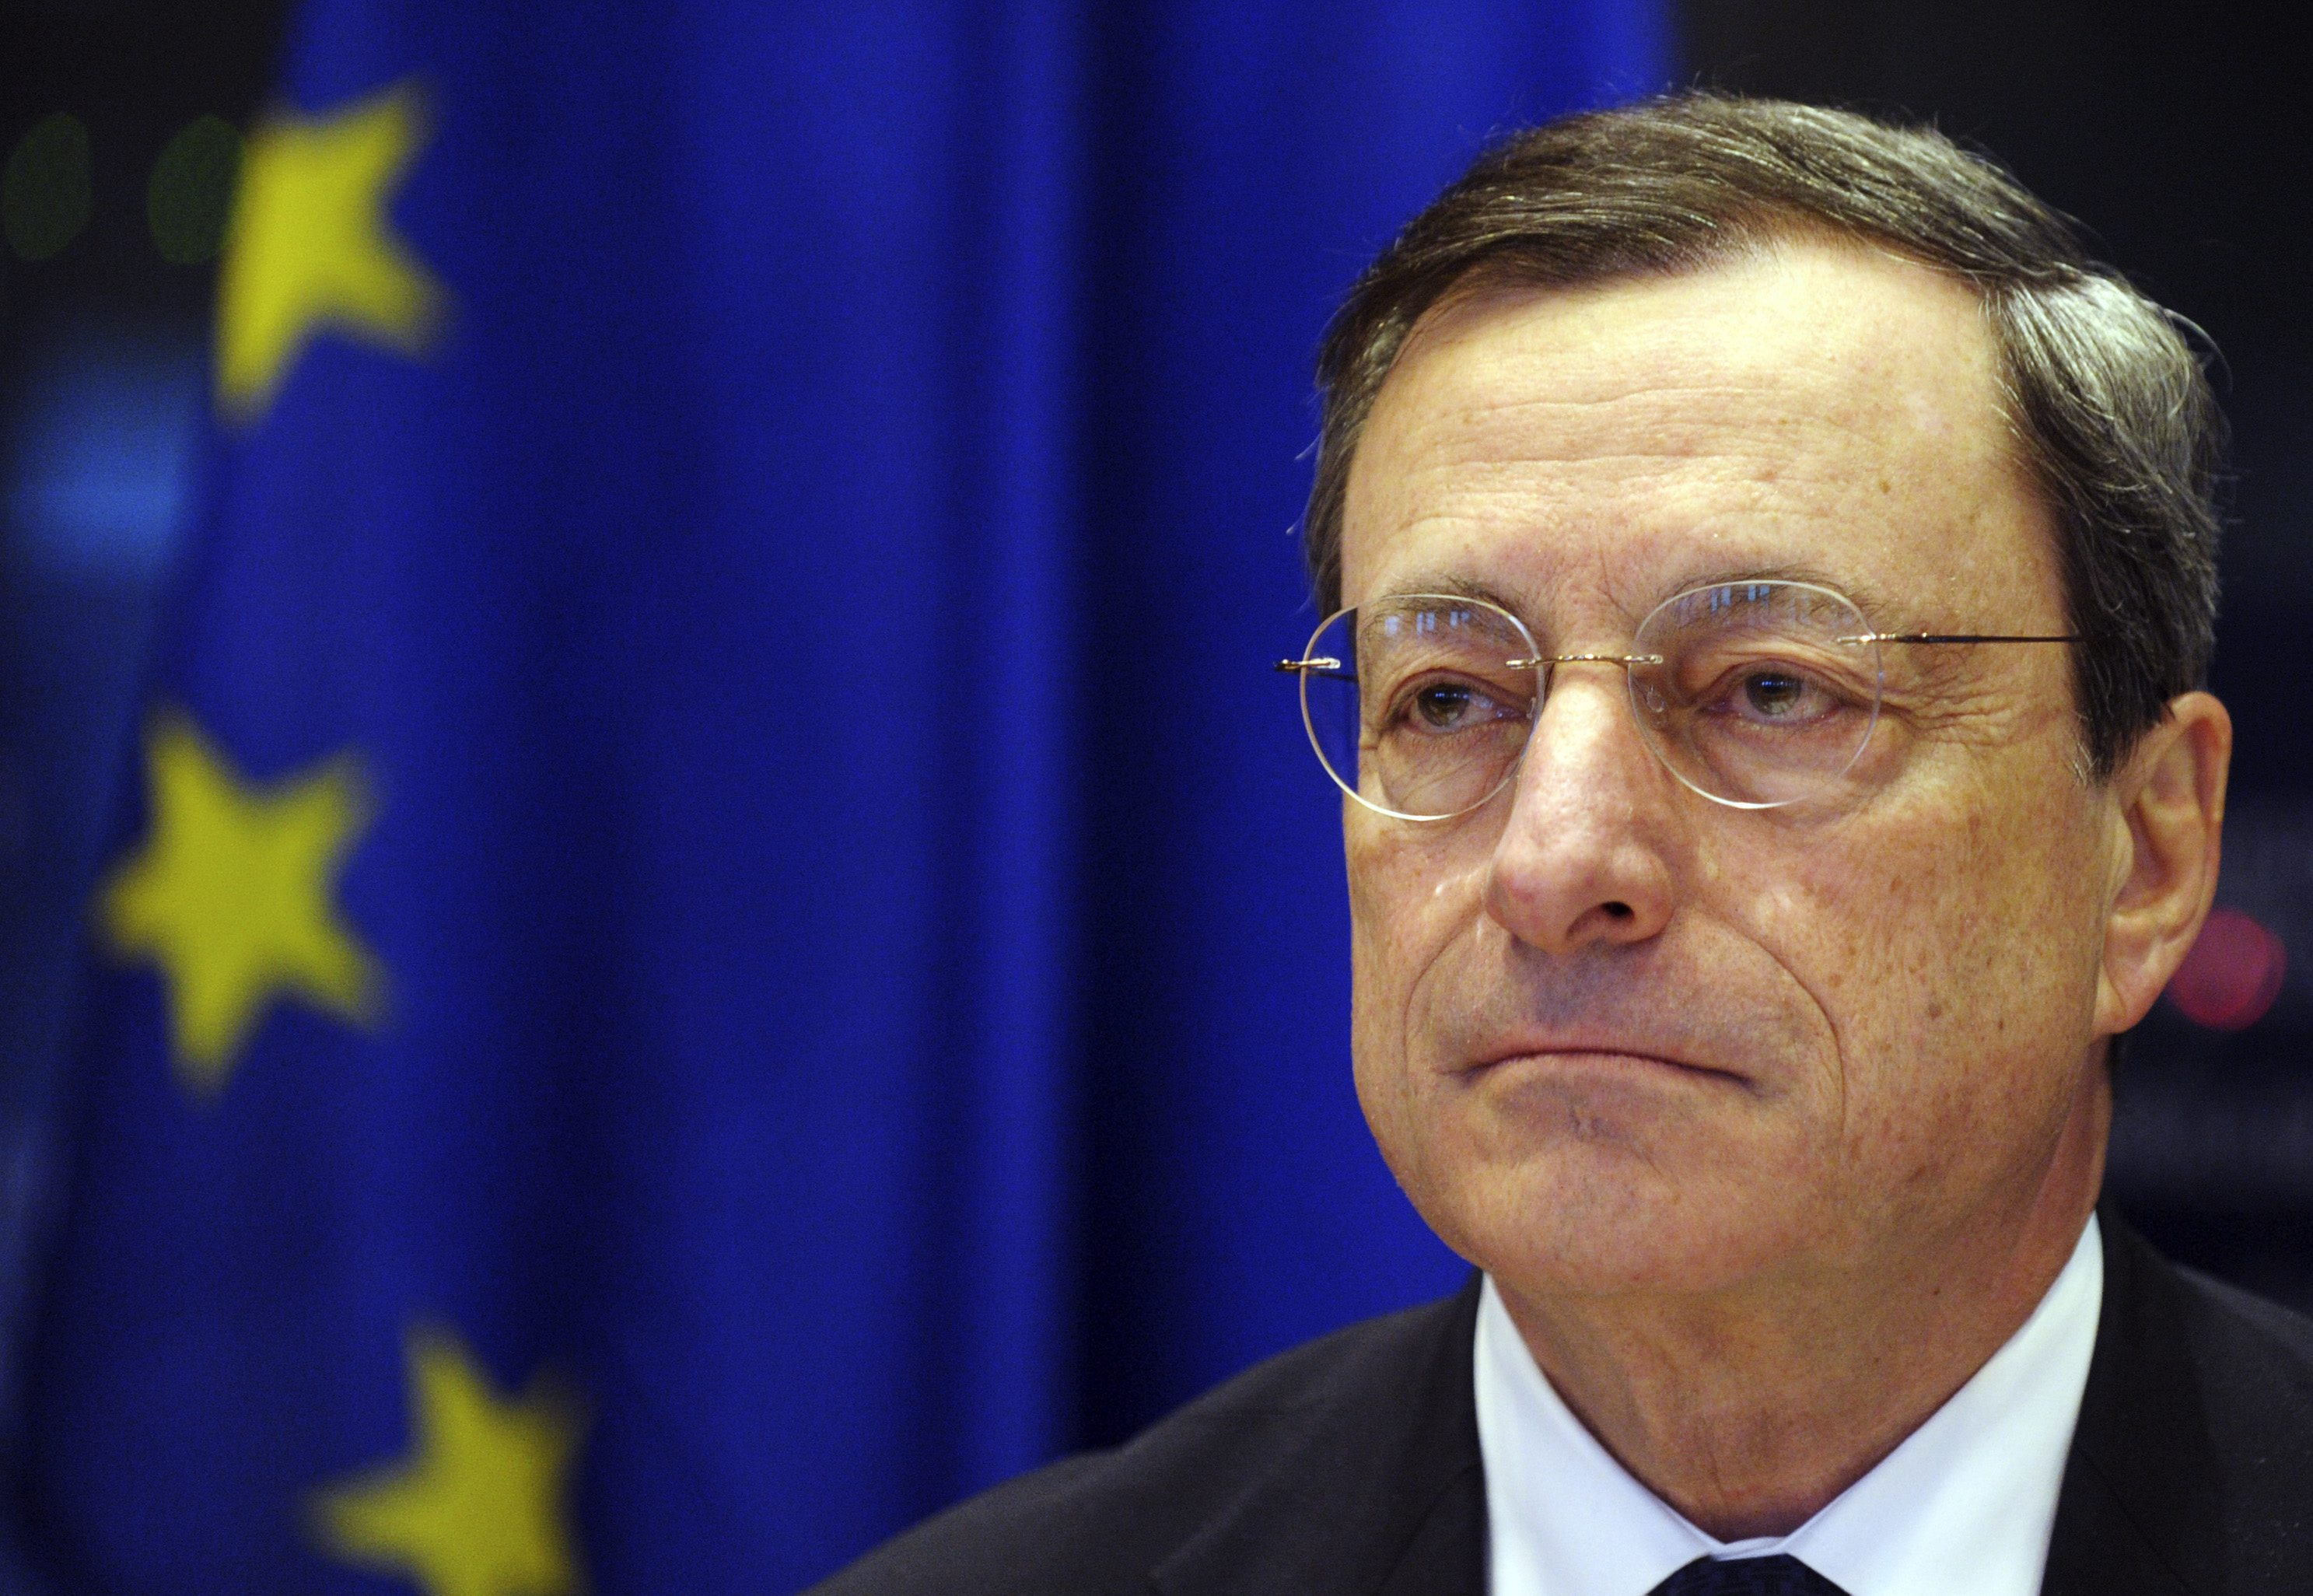 European Central Bank (ECB) President Mario Draghi addresses a news conference at the European parliament in Brussels December 17, 2012.   REUTERS/Laurent Dubrule (BELGIUM - Tags: POLITICS BUSINESS)CODE: X02997